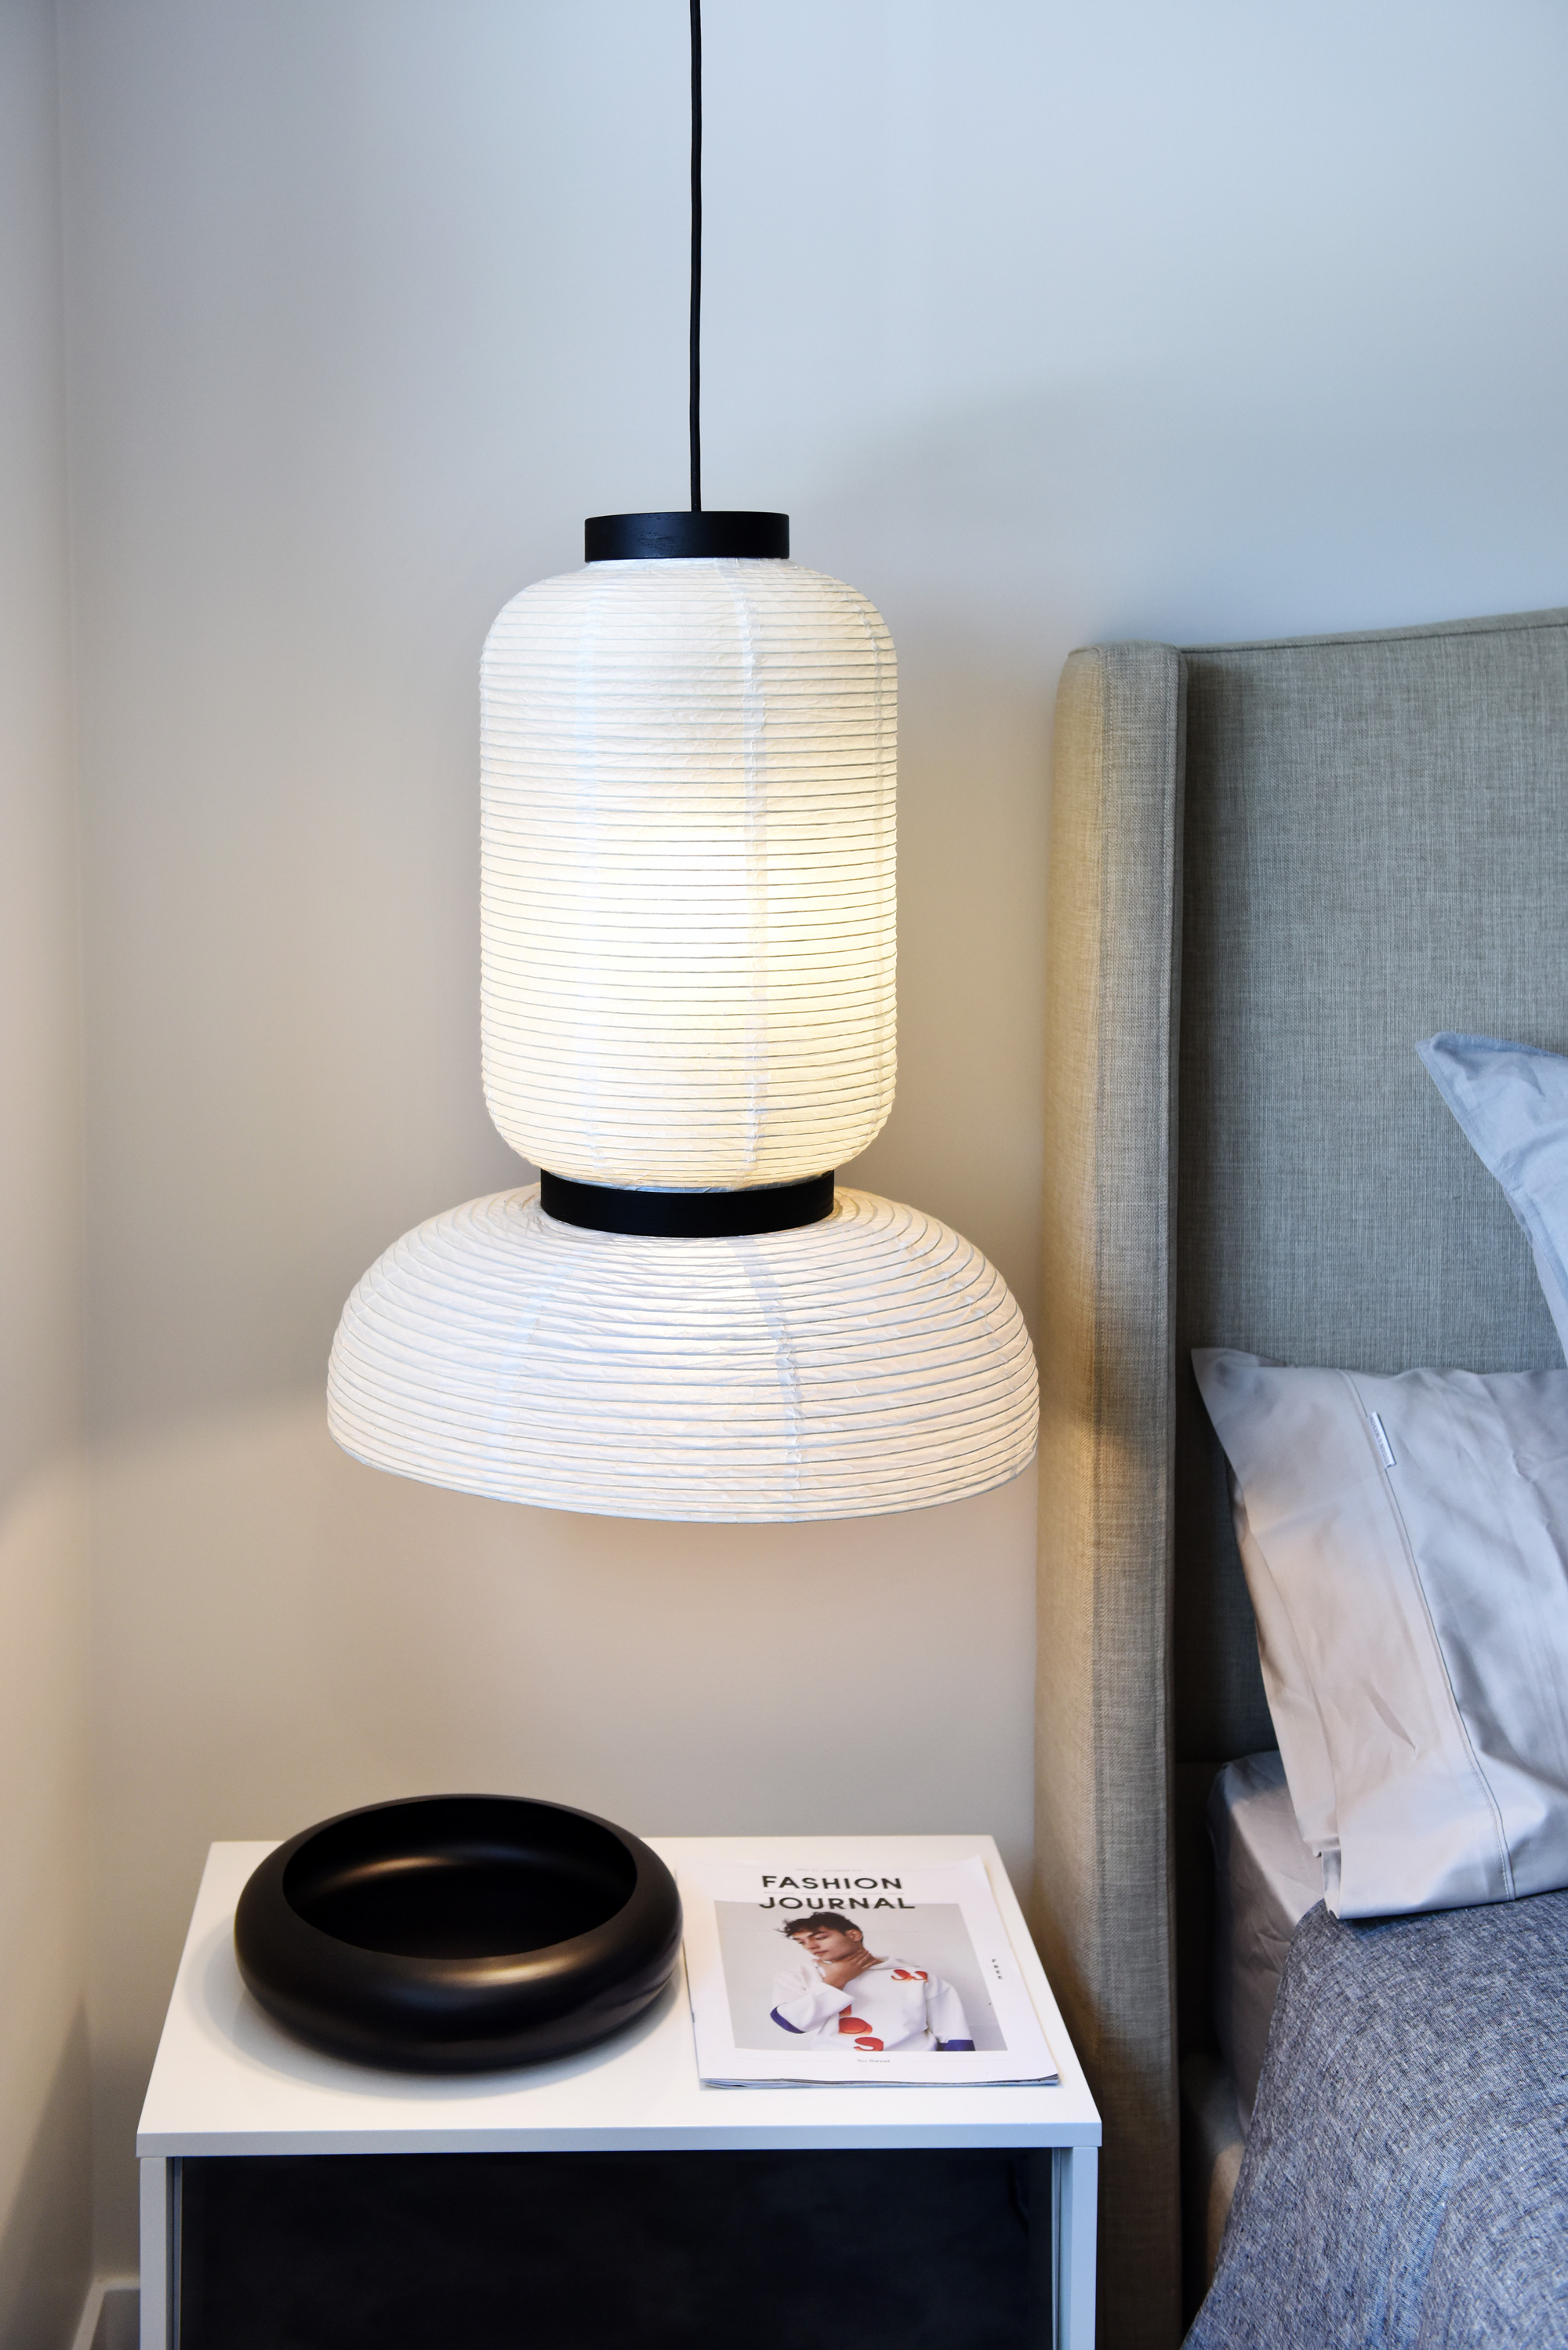 FEATURE BEDSIDE PENDANT | Image by Vanessa Hall